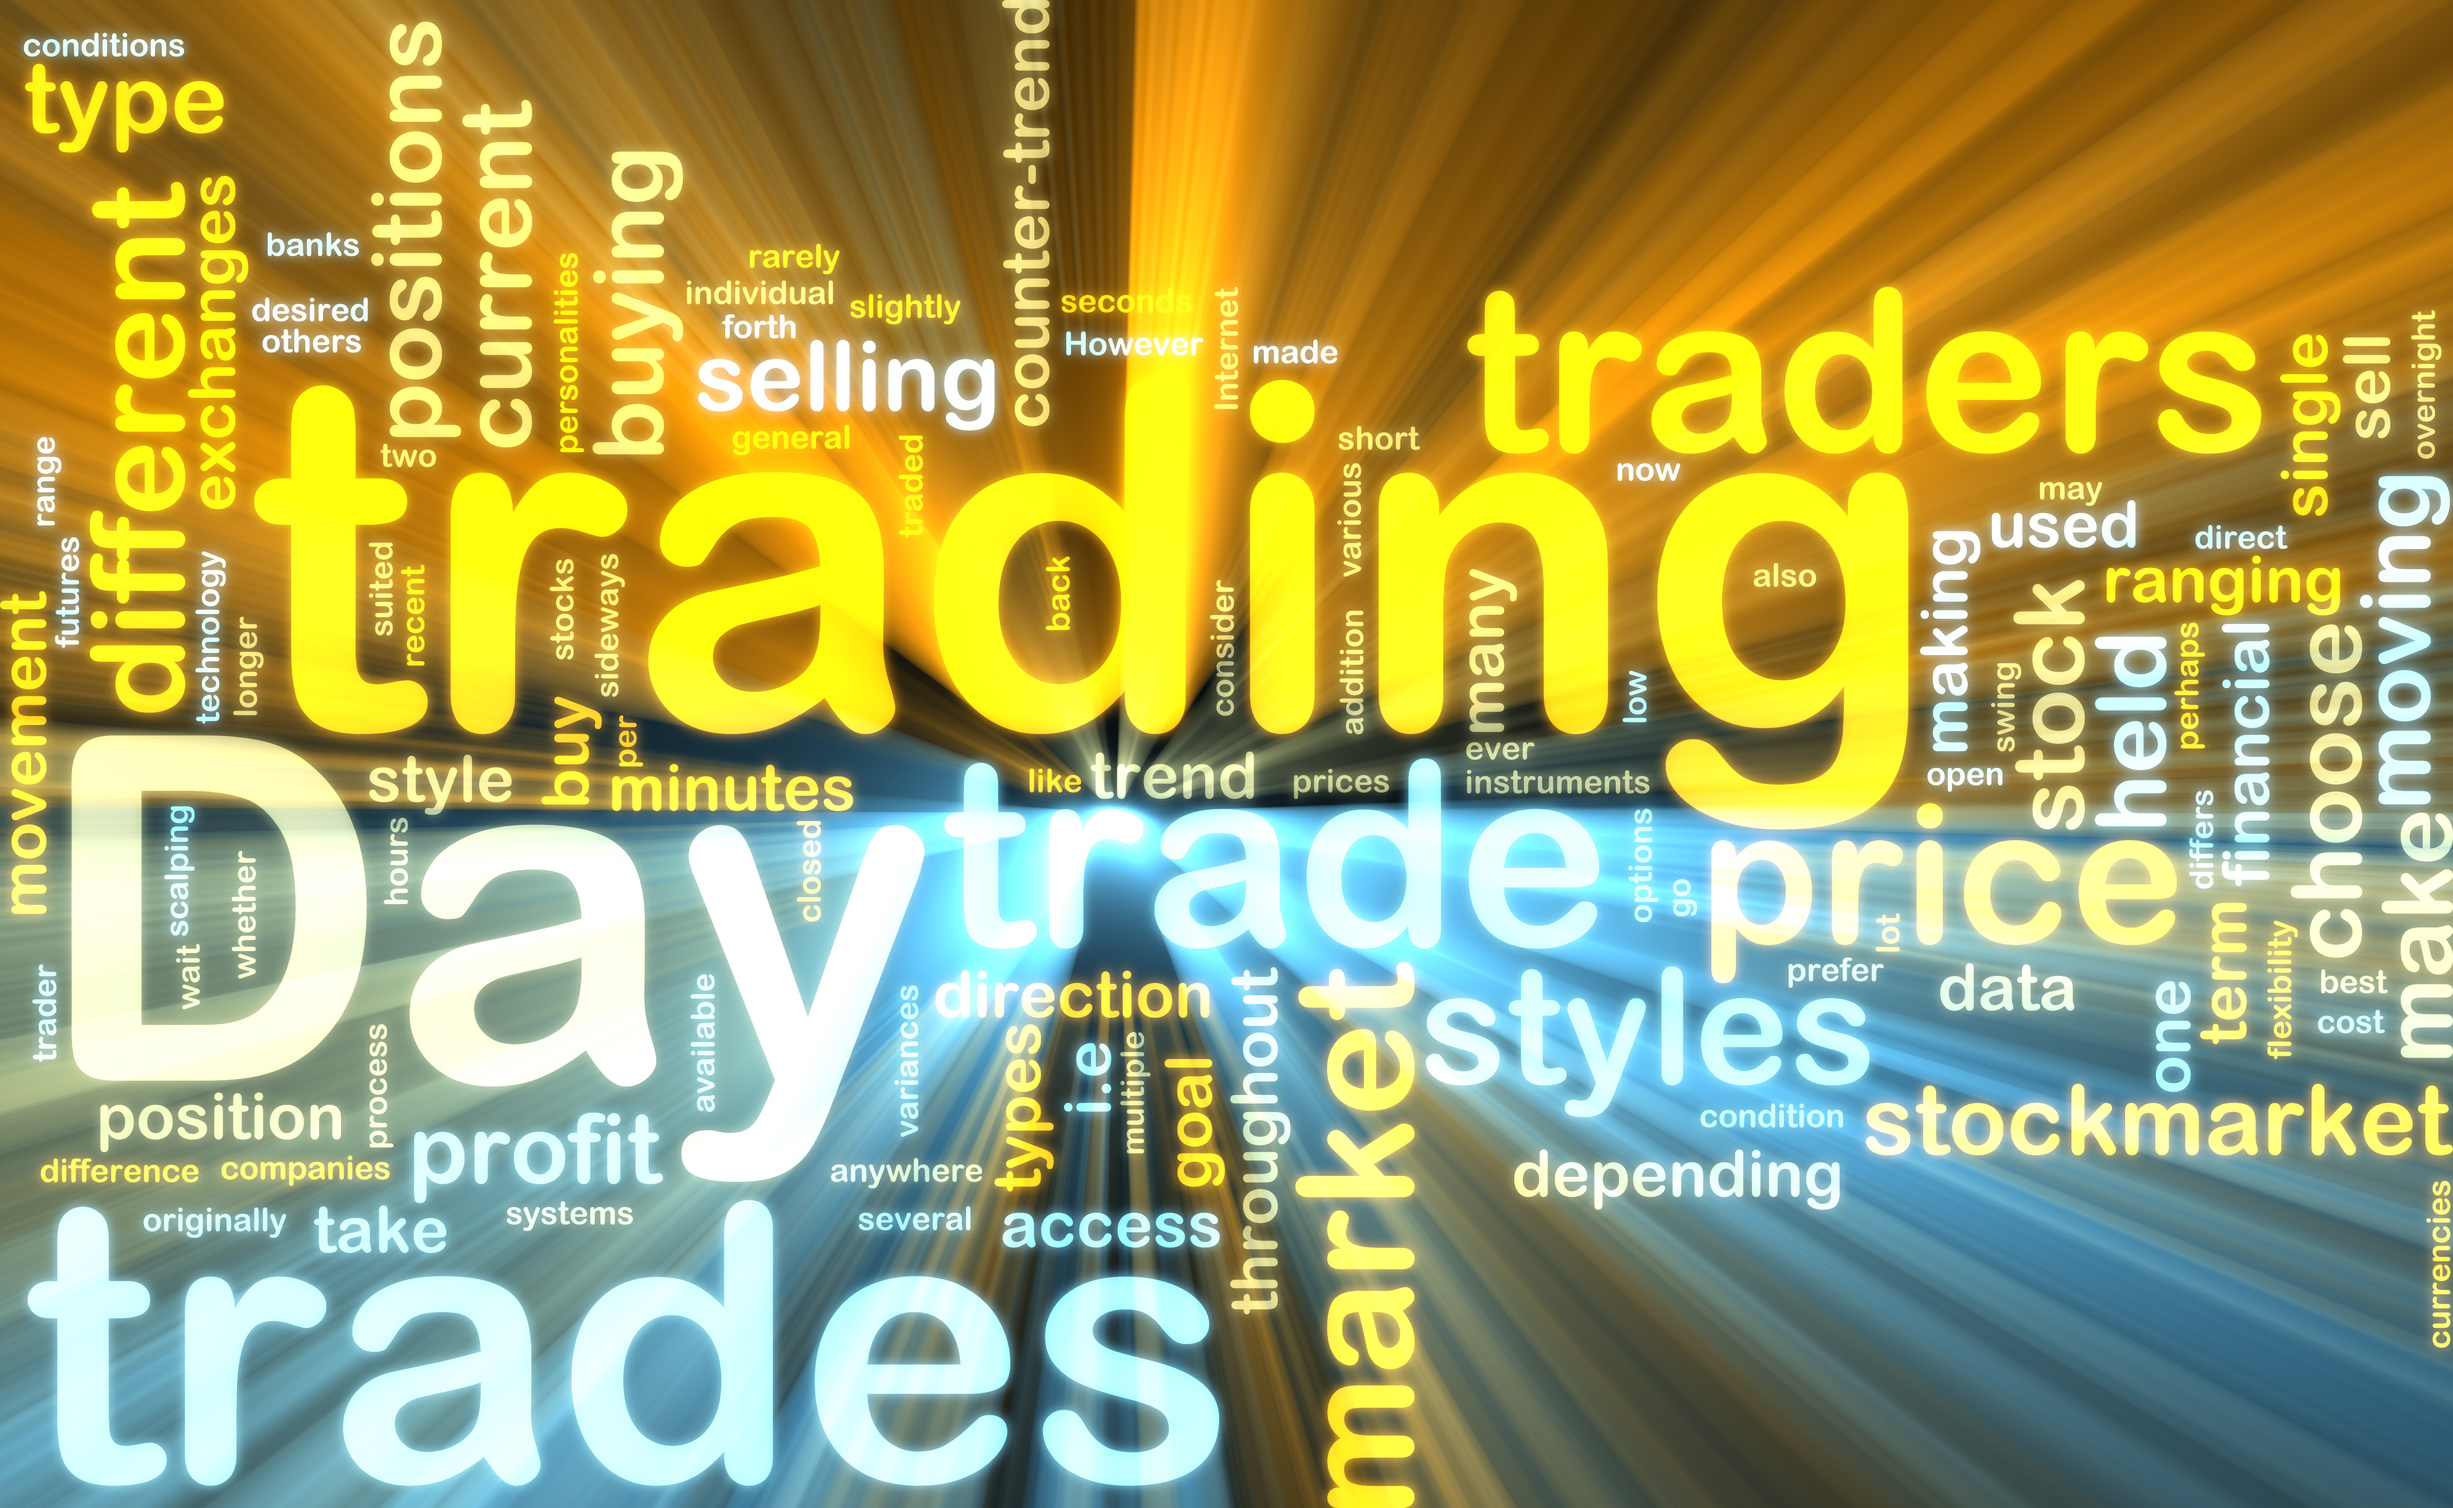 Cfd forex trading definition